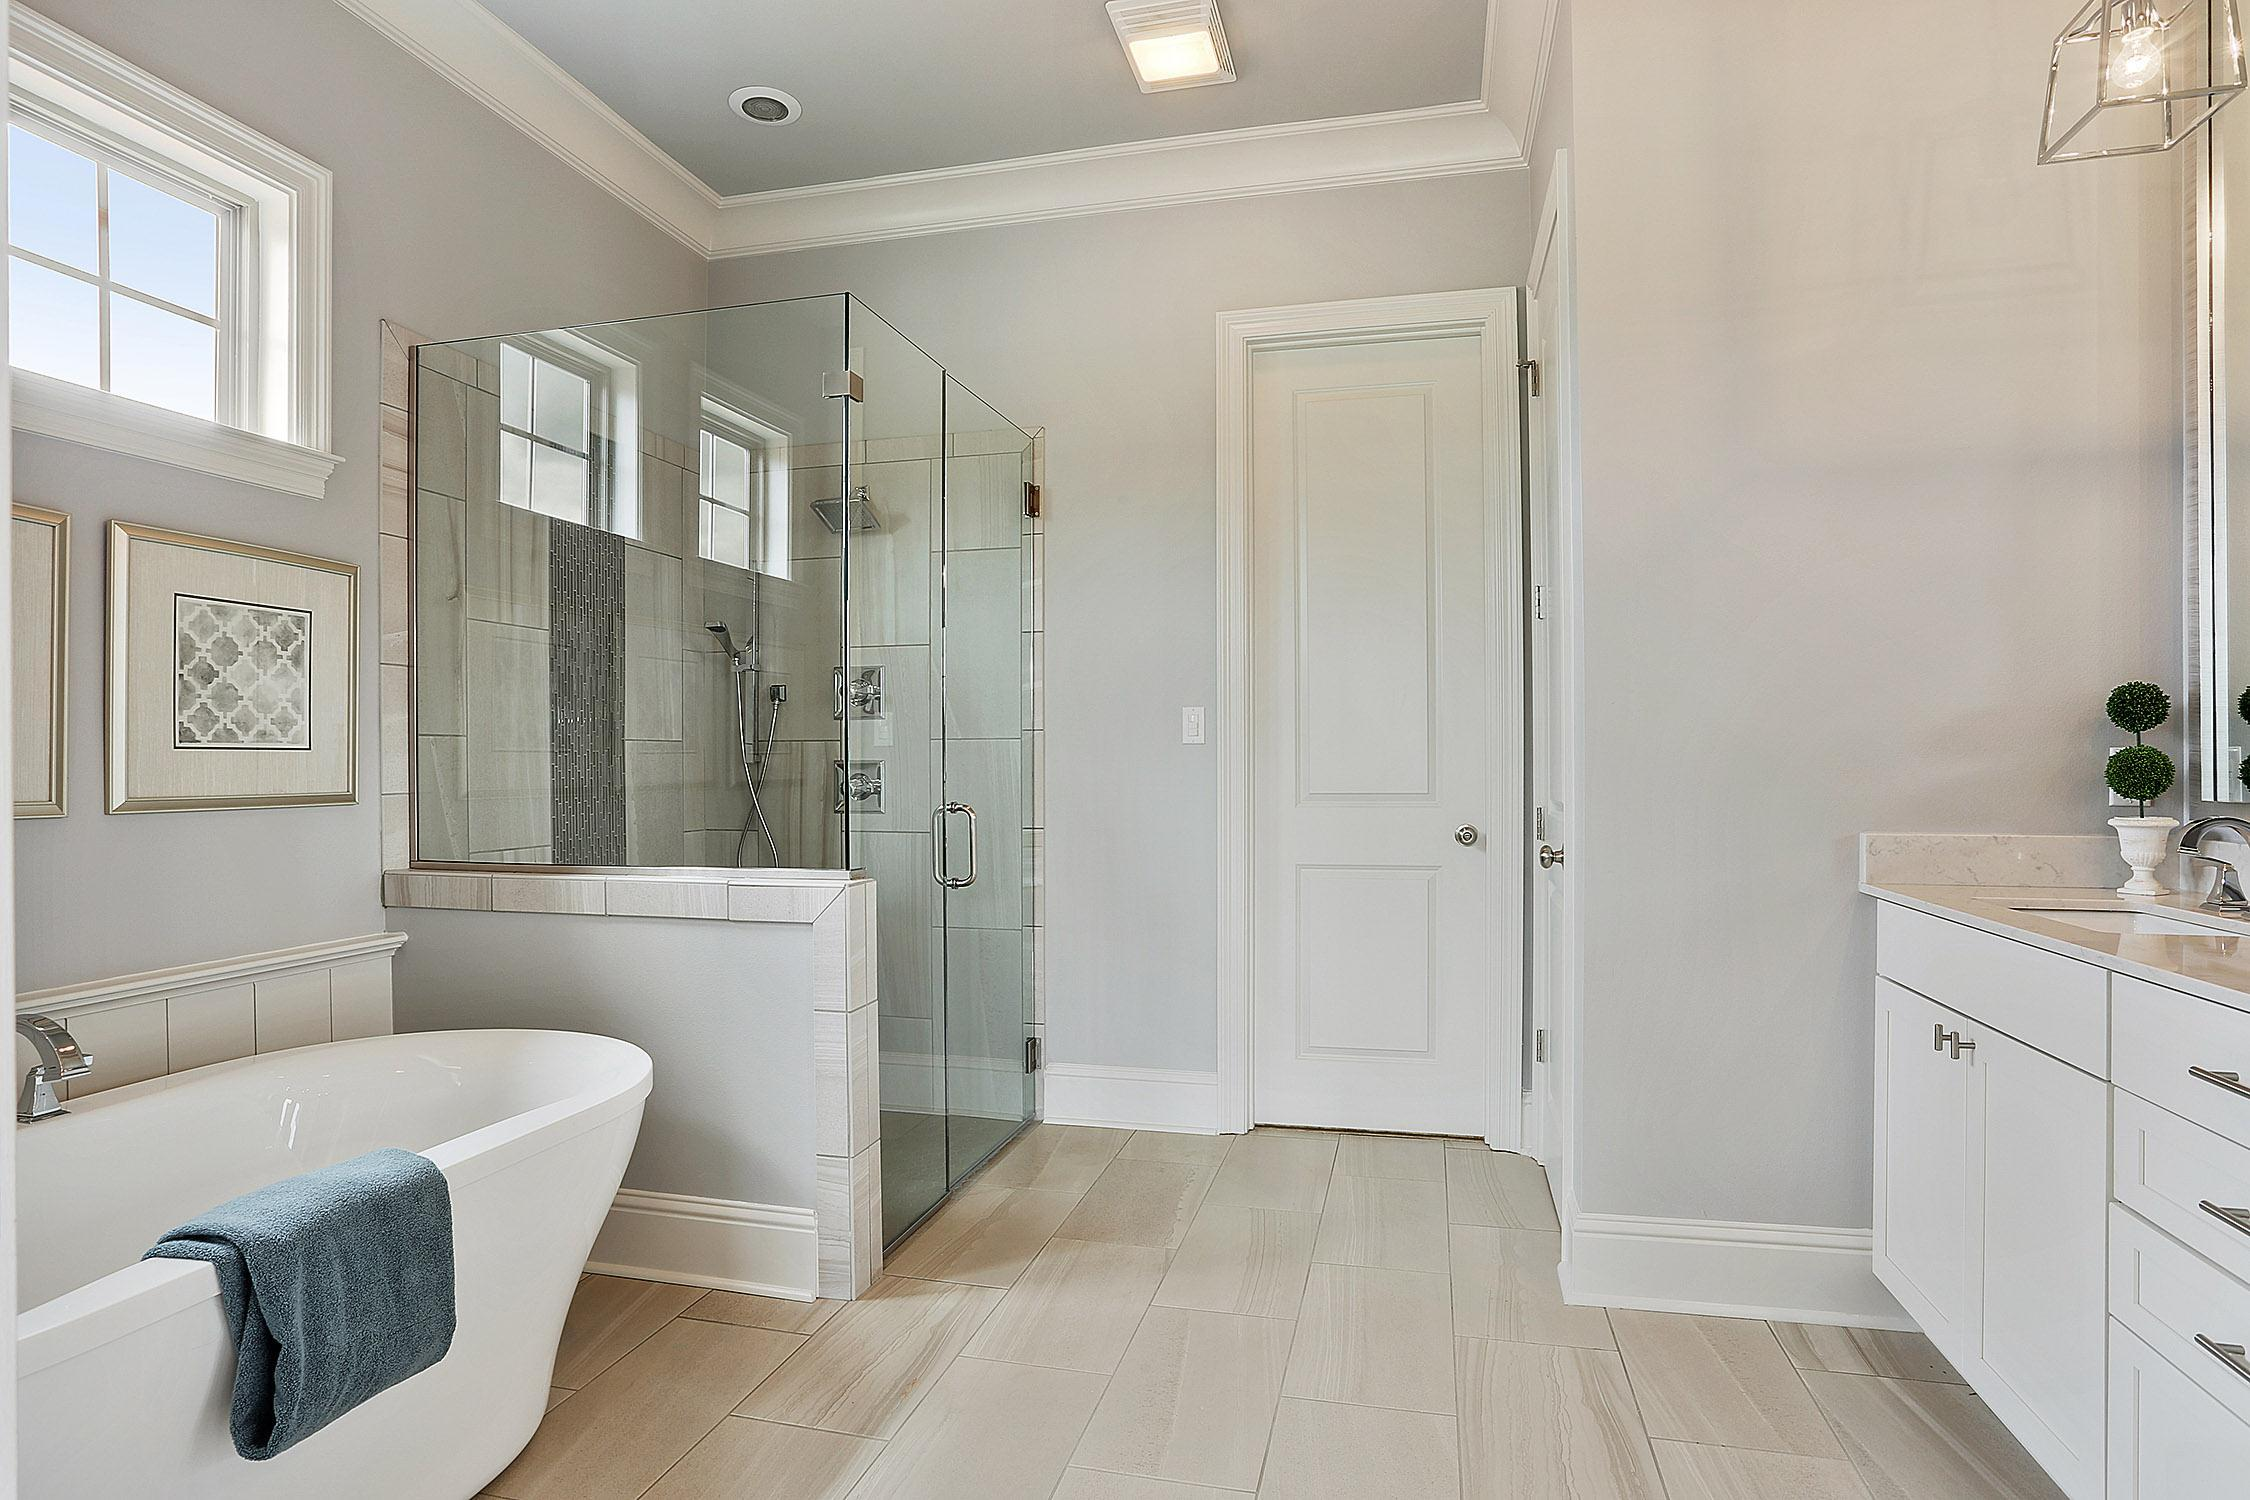 Bathroom featured in the Julianne By Highland Homes in New Orleans, LA